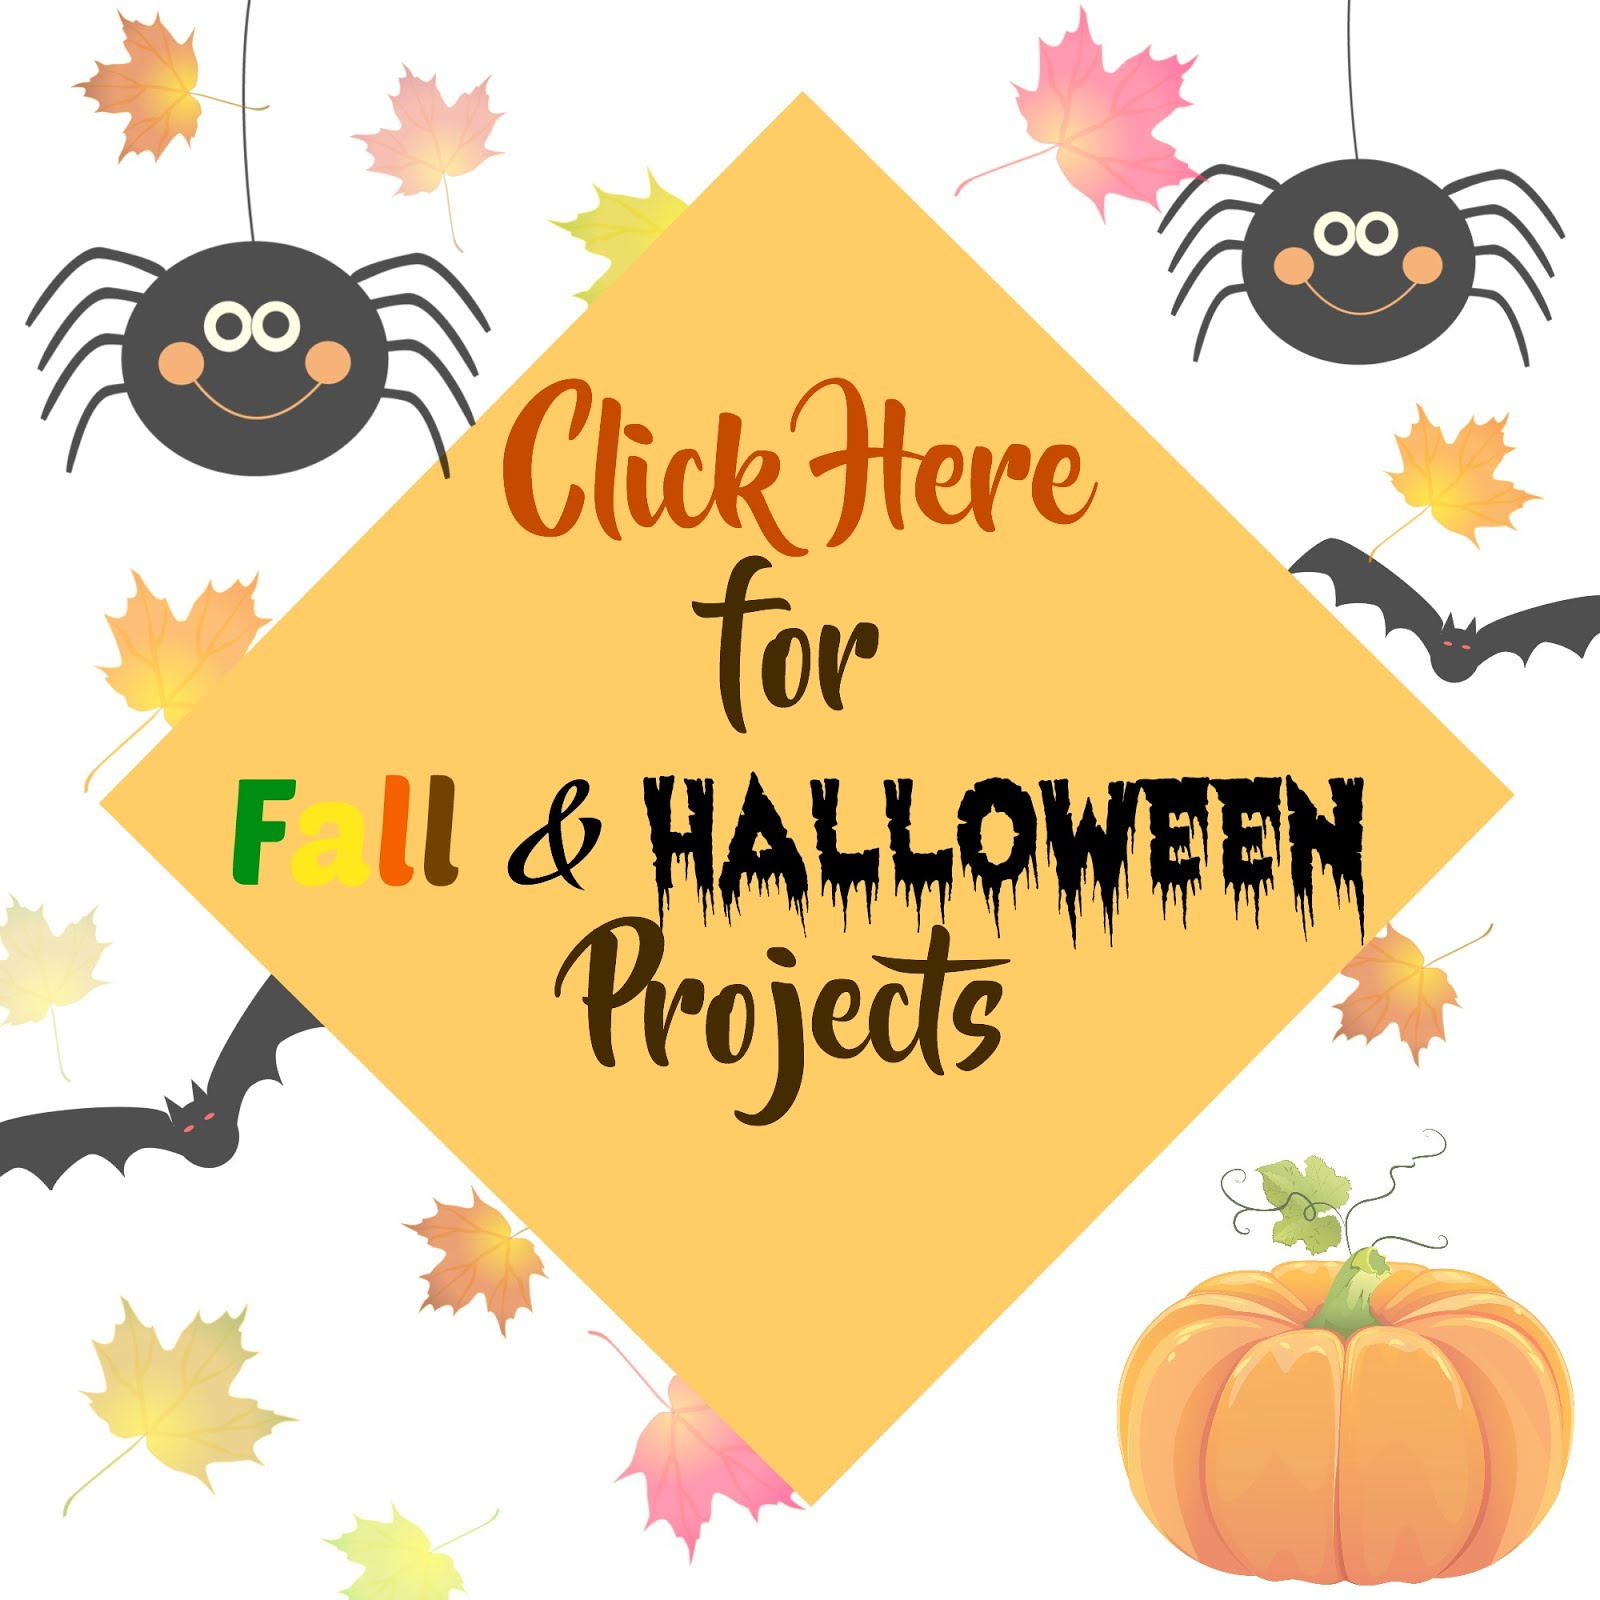 Fall & Halloween Projects